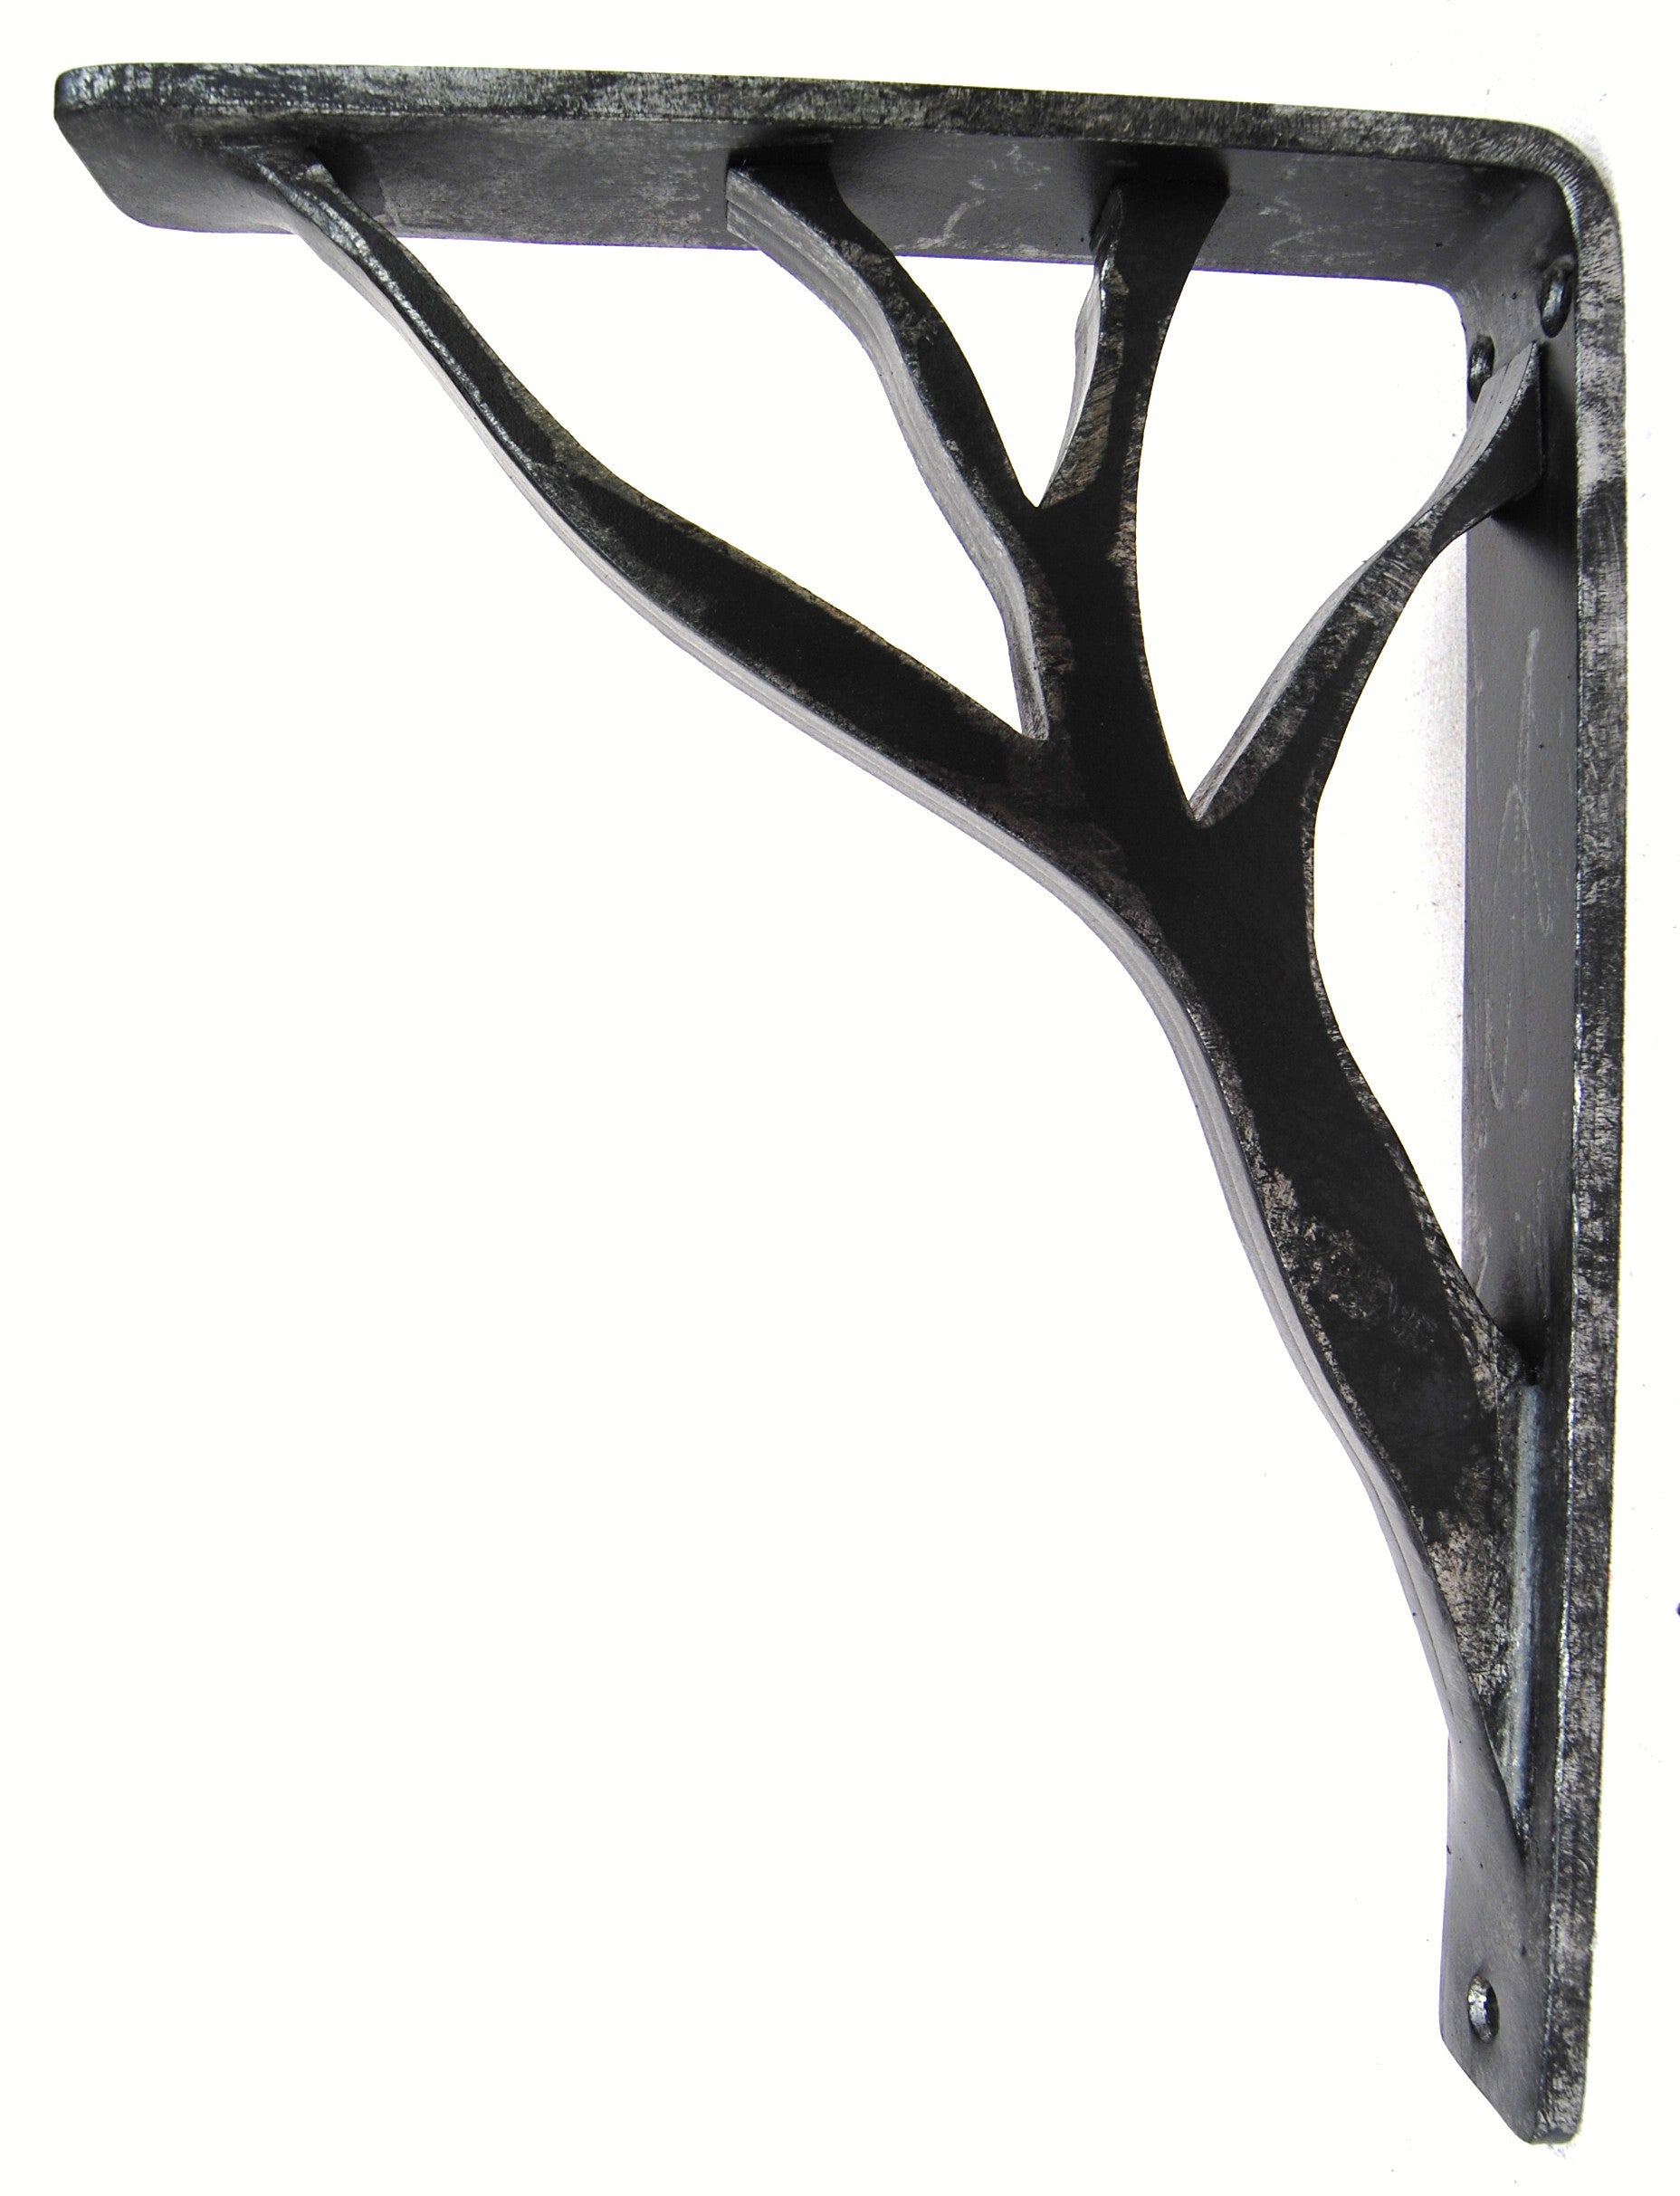 Decorative Iron Countertop Corbels Corbel Support Brackets Ironsupports